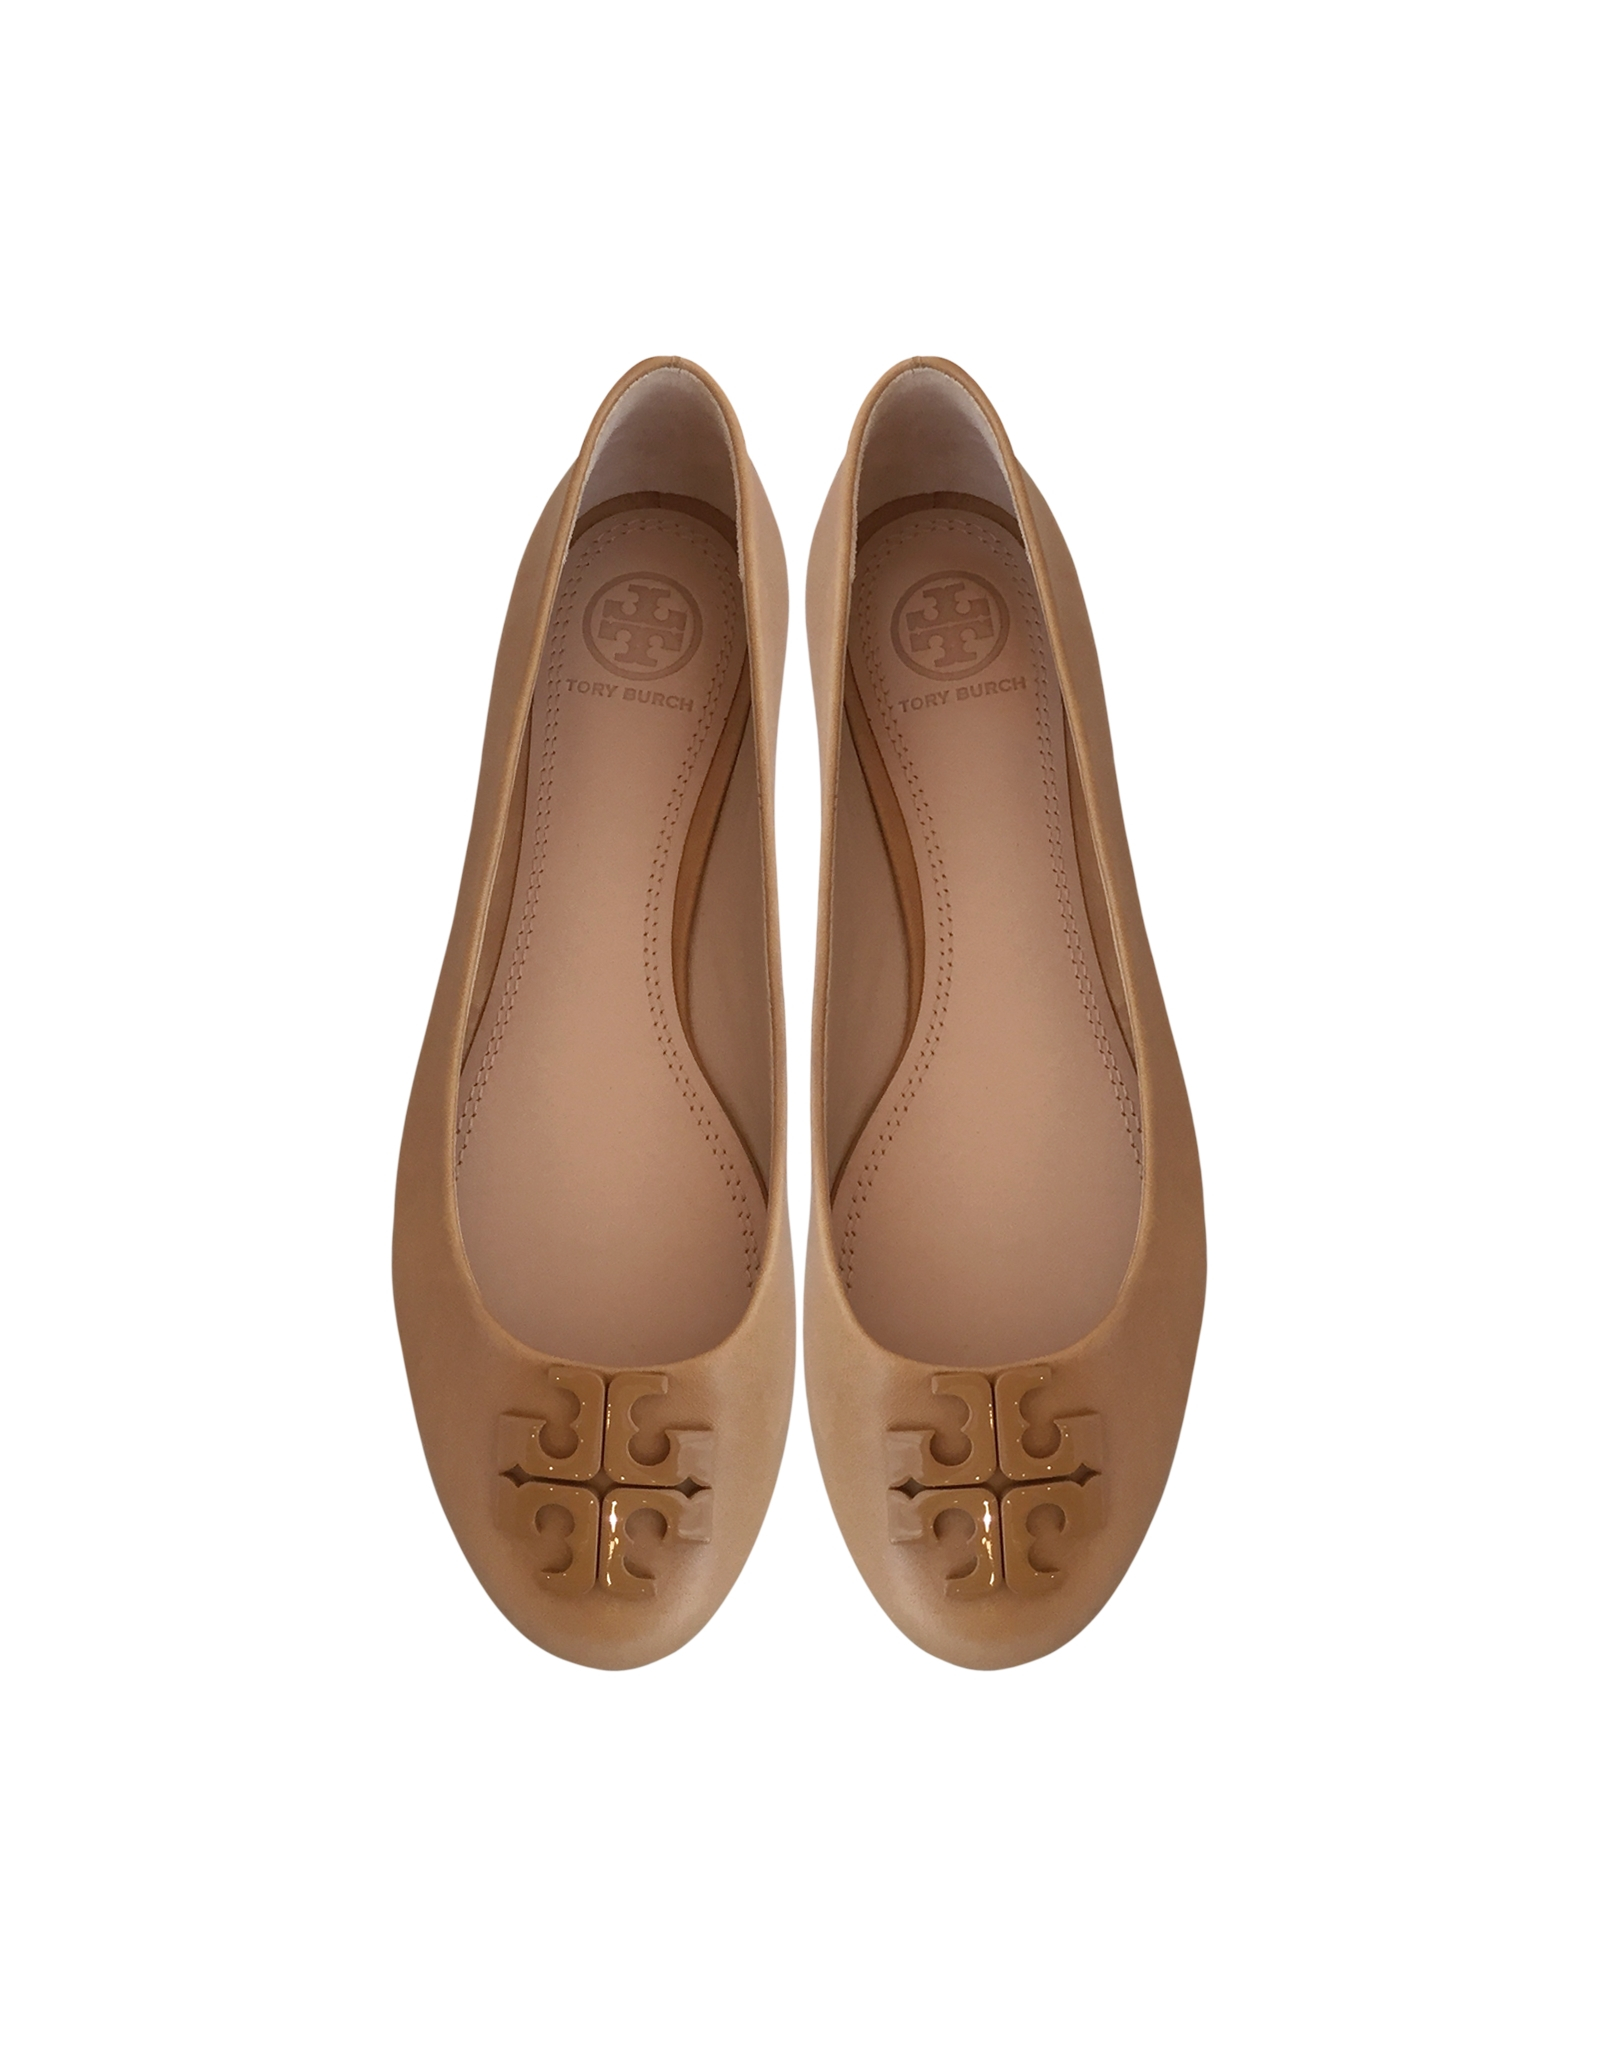 f2ecb76af73d Lyst - Tory Burch Lowell Blond Leather Ballerina in Natural